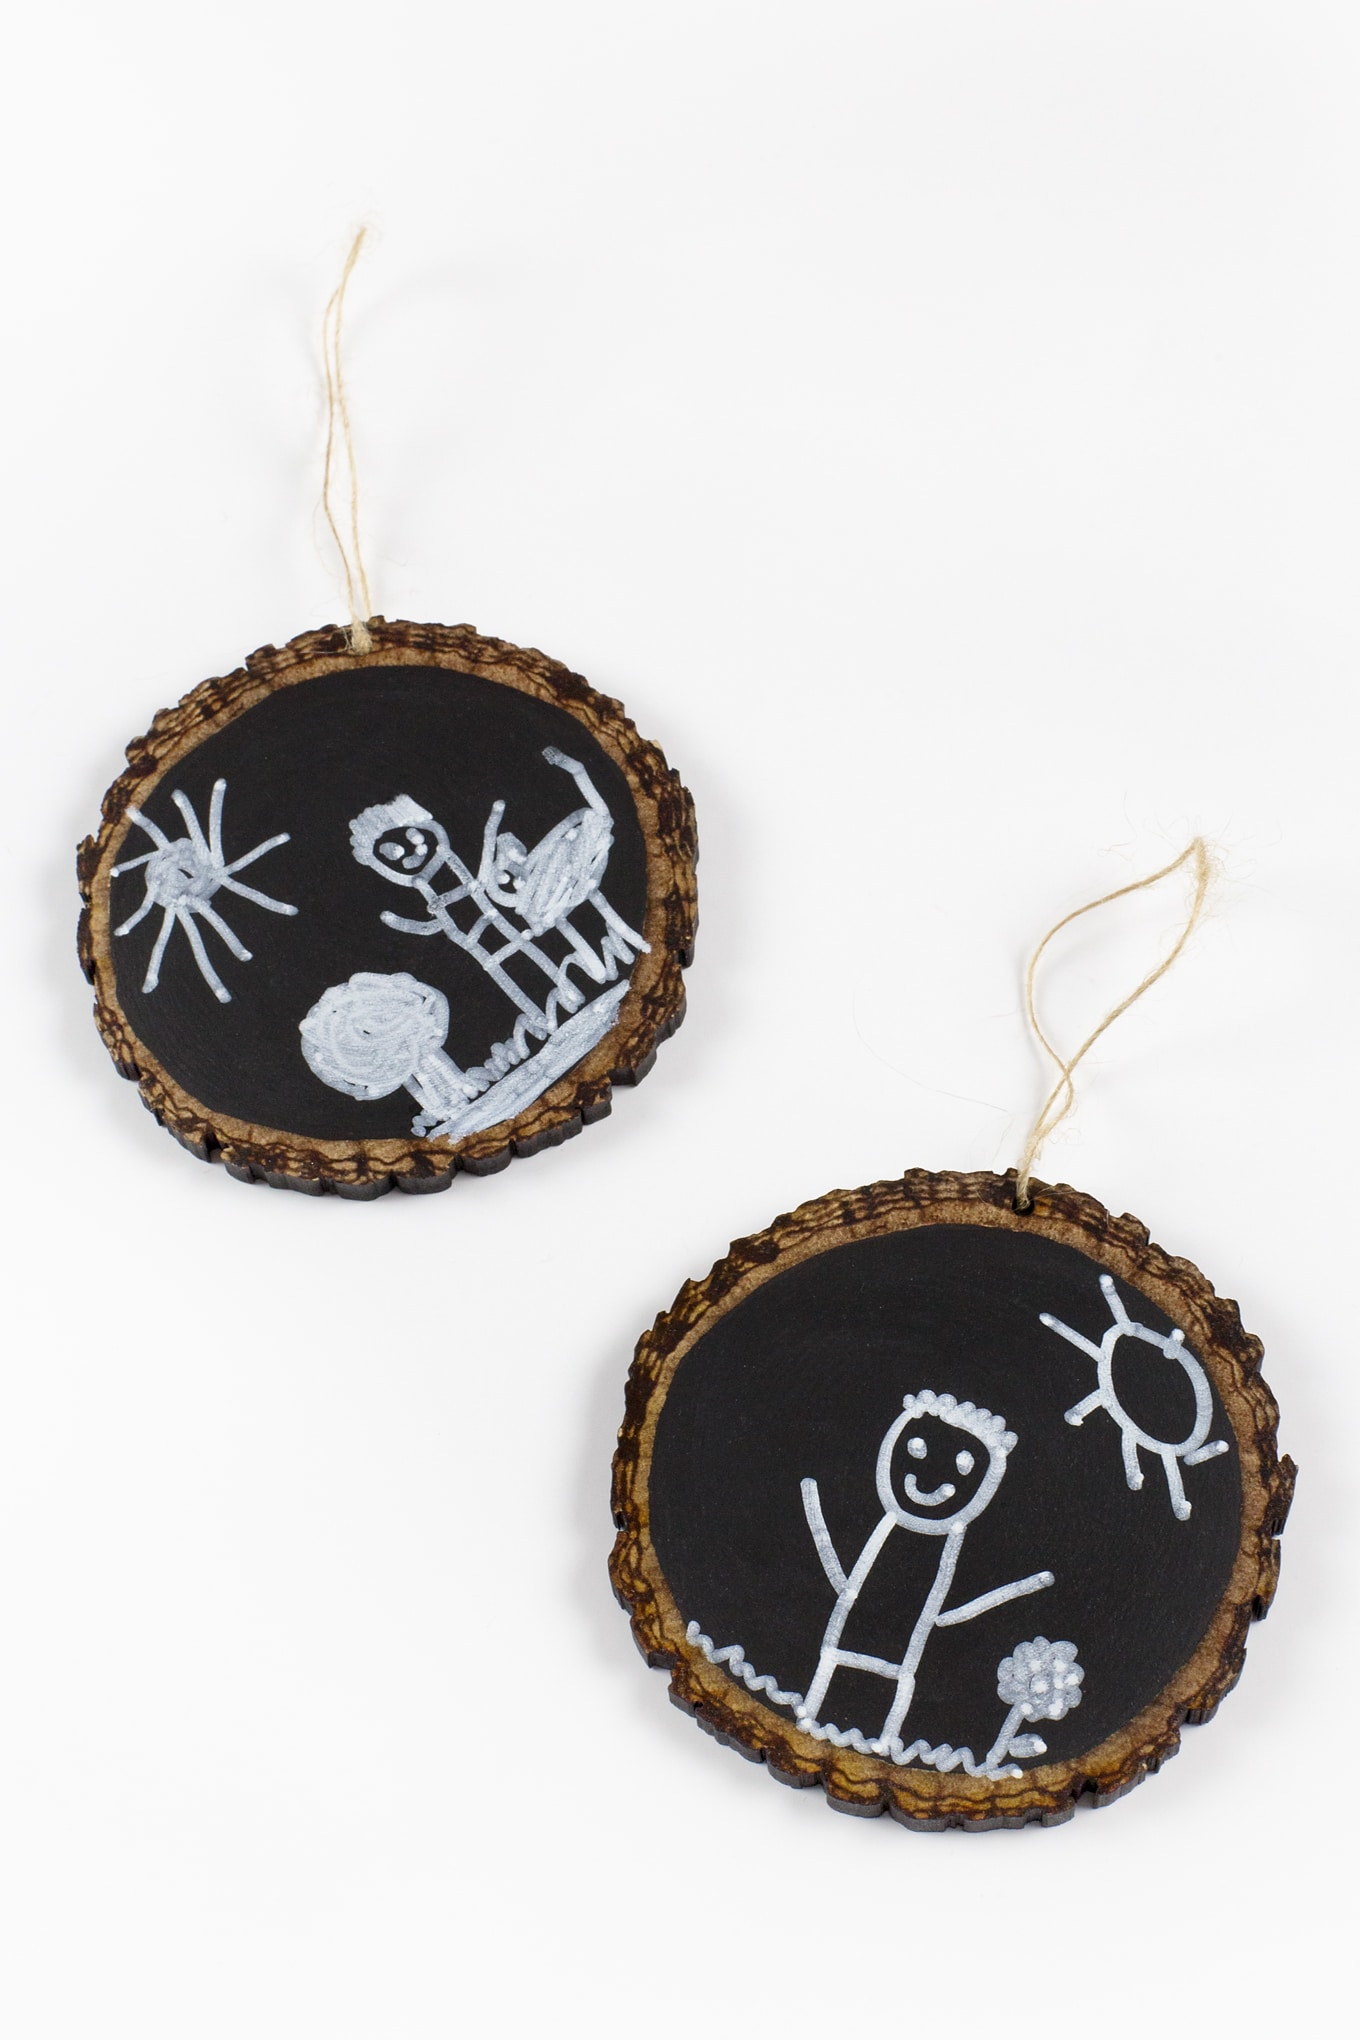 How to Make Easy and Fun DIY Chalkboard Keepsake Ornaments